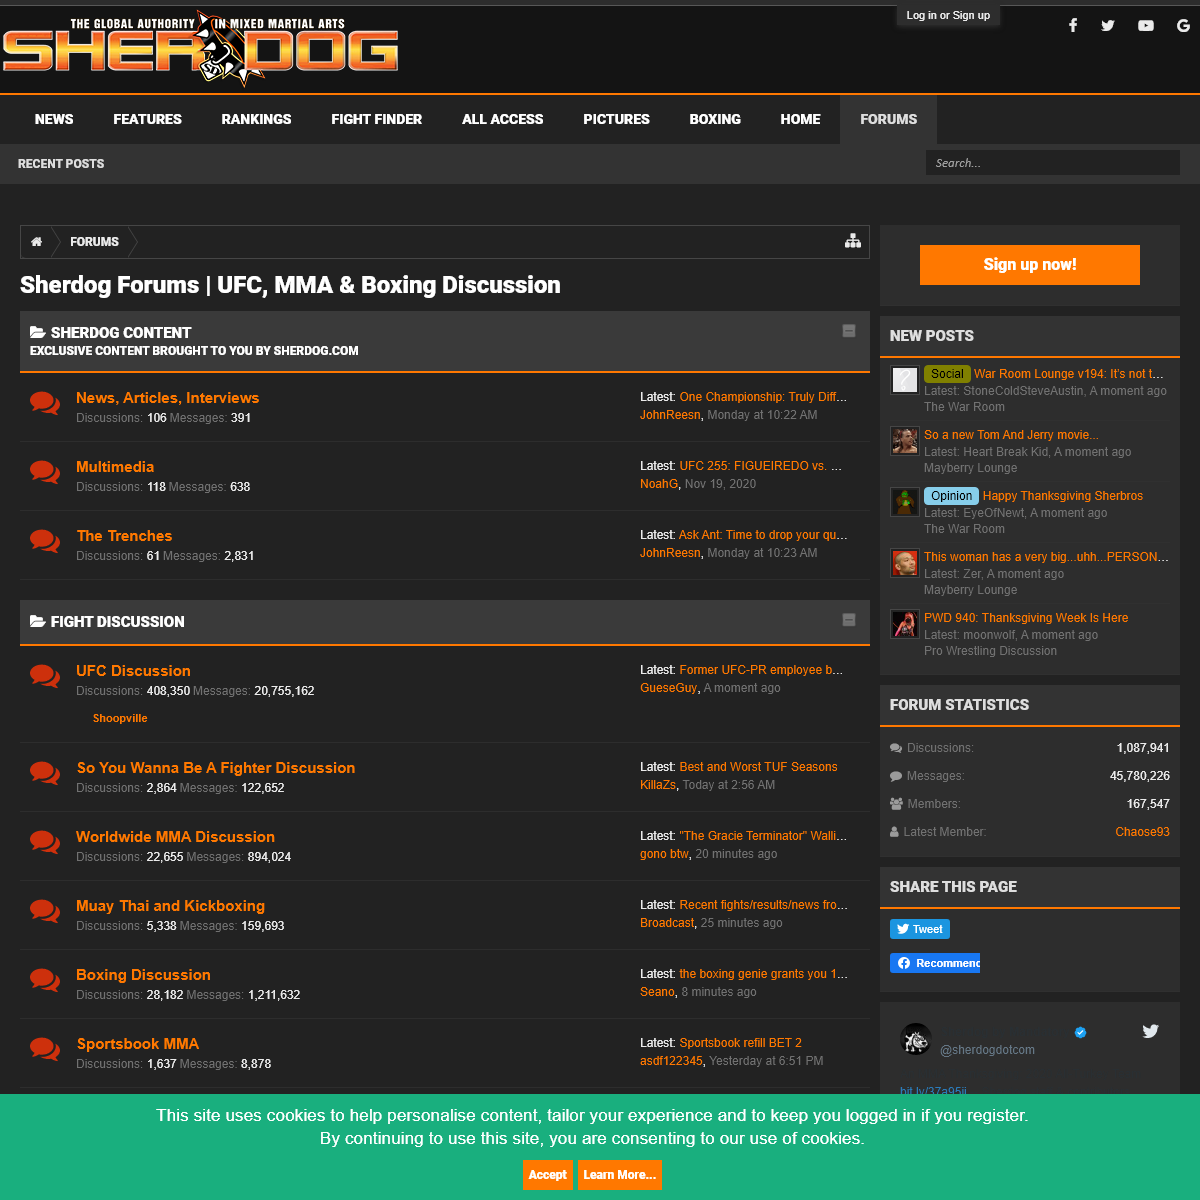 Sherdog Forums - UFC, MMA & Boxing Discussion